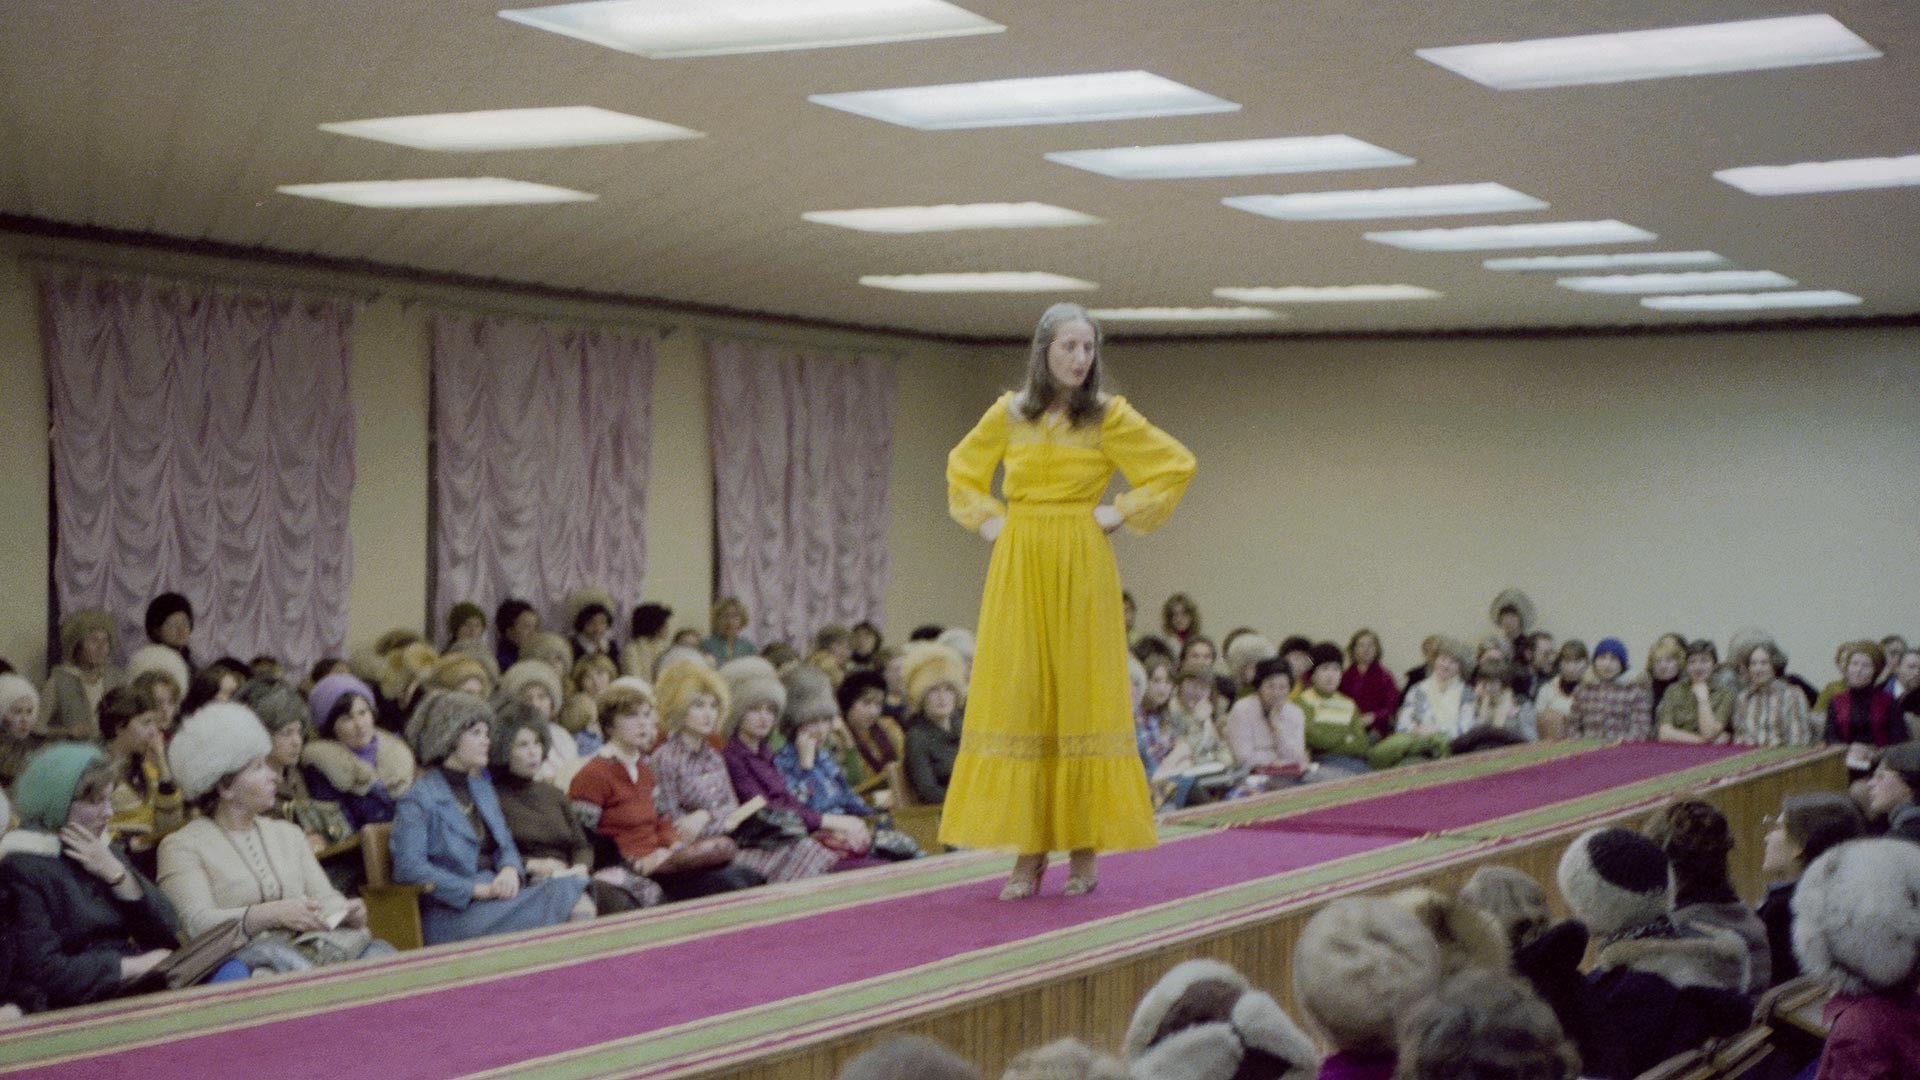 Presentation of the new Spring 80 collection in the showing room of the Tyumen House of Fashion Design, 1980.